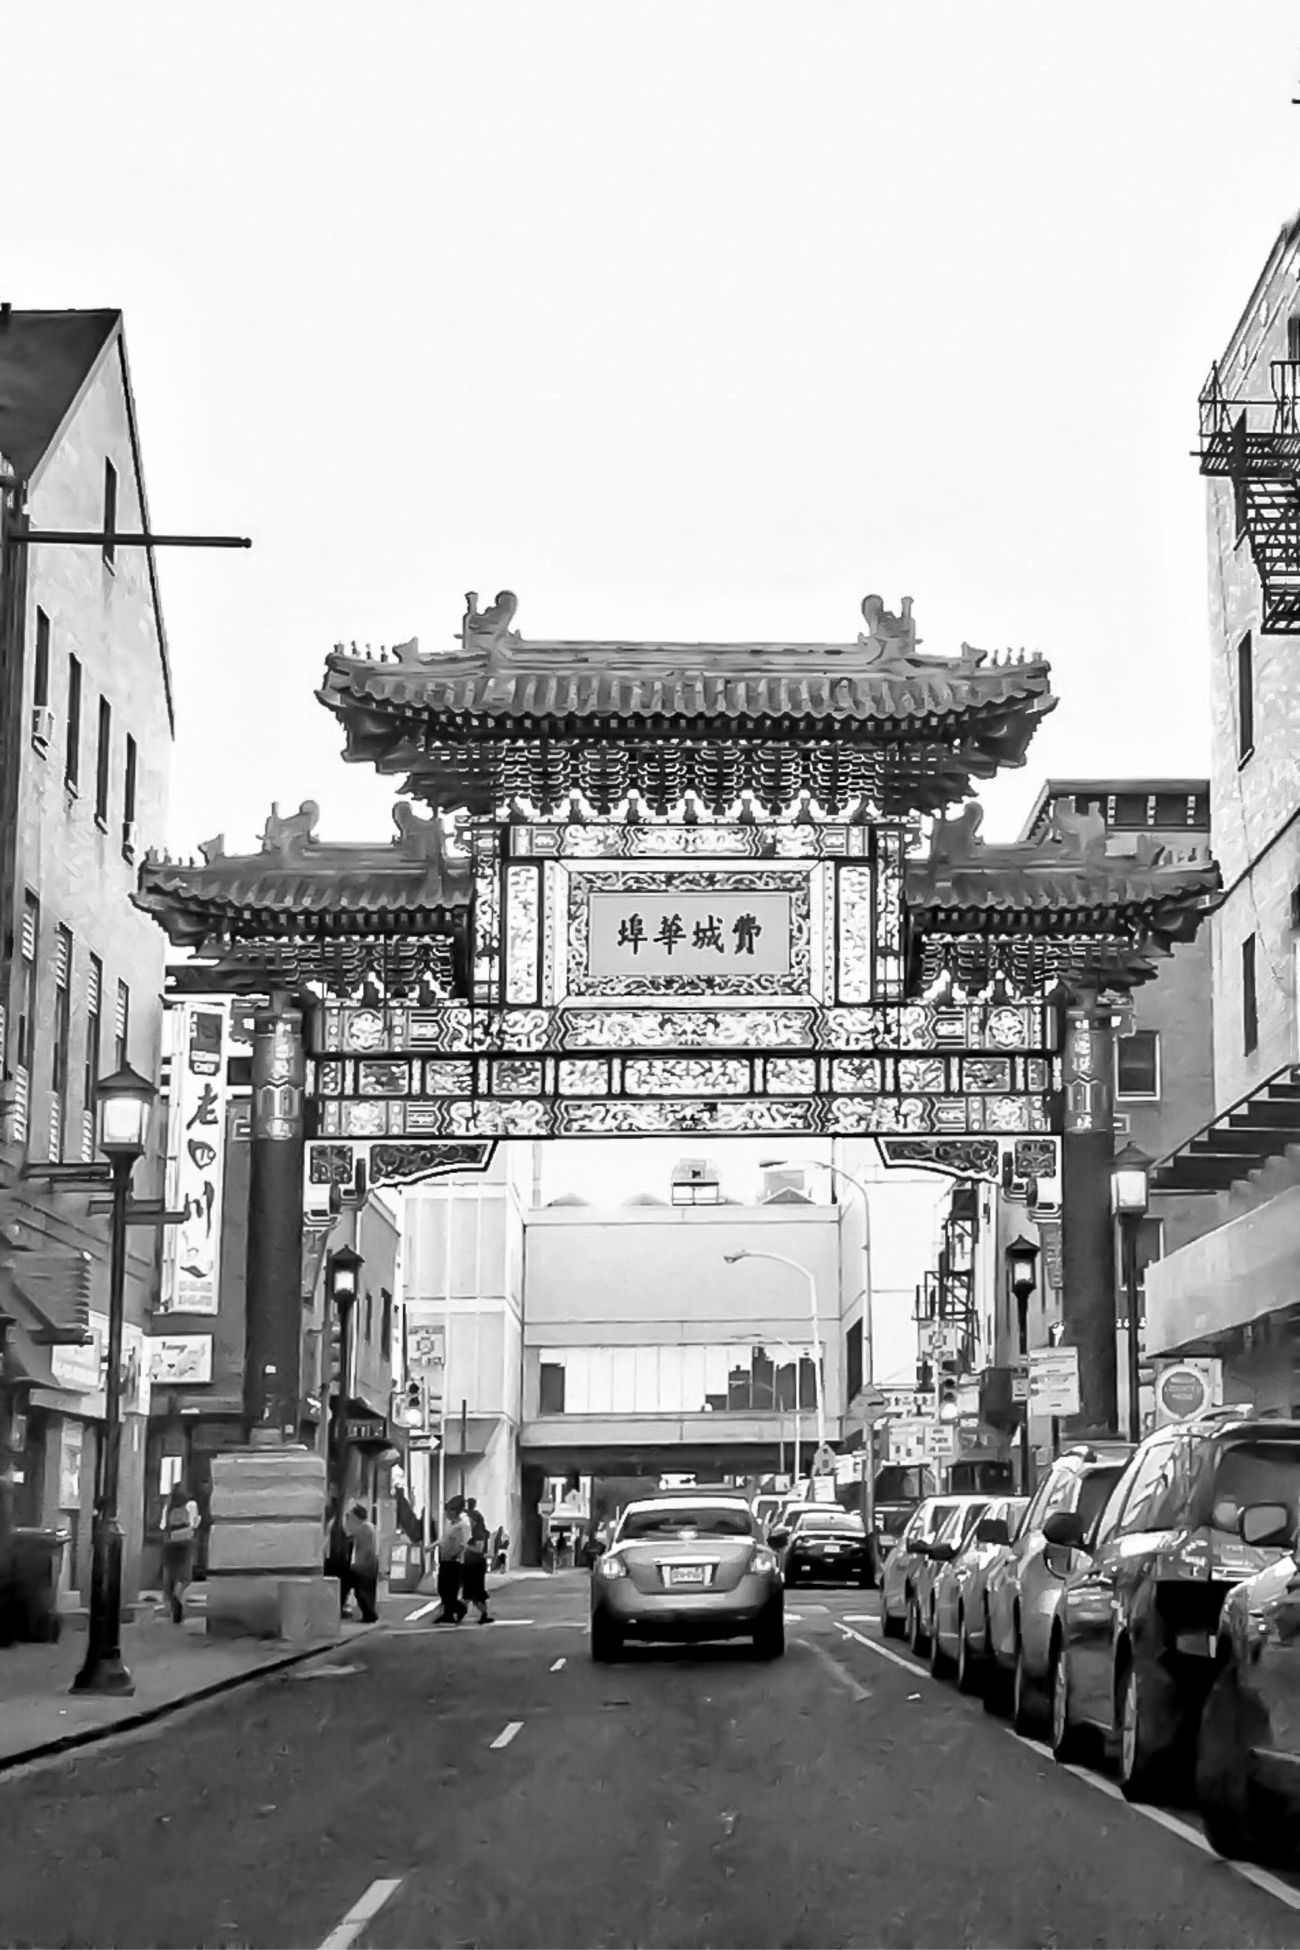 An IPhone in China Town. Building Exterior Architecture City Built Structure Transportation Land Vehicle Mode Of Transport Car Sky Outdoors City Life Day No People City Gate China Town Philadelphia Streamzoofamily IPhone Photography Iphonephotography IPhoneography Iphoneonly IPhone Iphonesia Blackandwhite Black And White